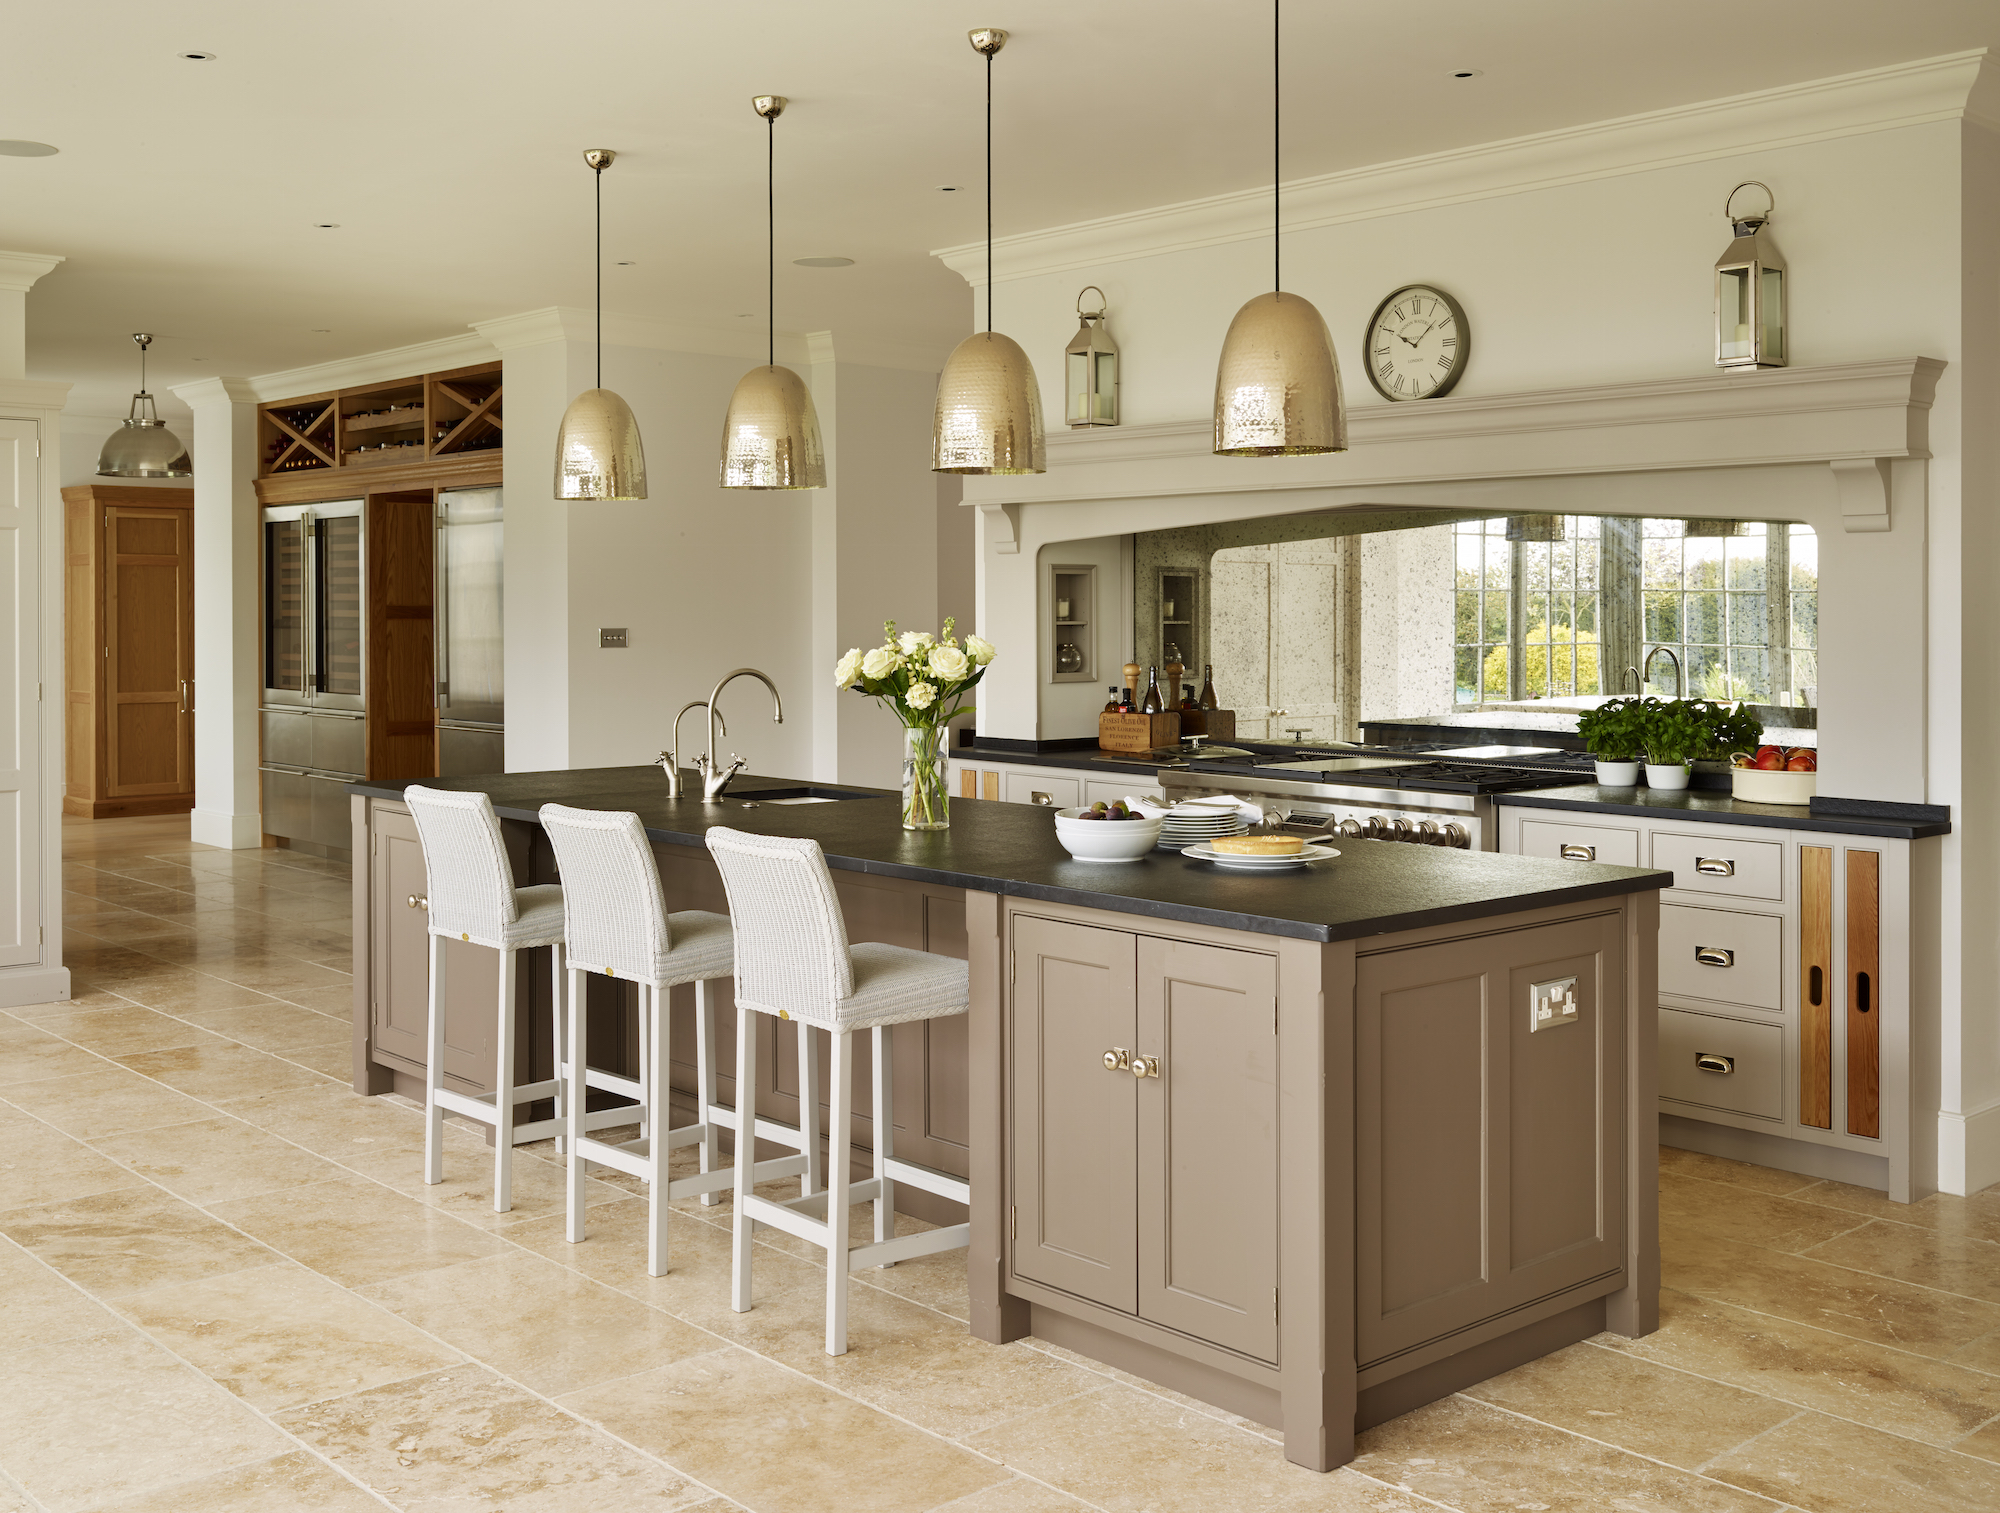 Kitchen Design Ideas kitchen design styles Kitchen Design Ideas